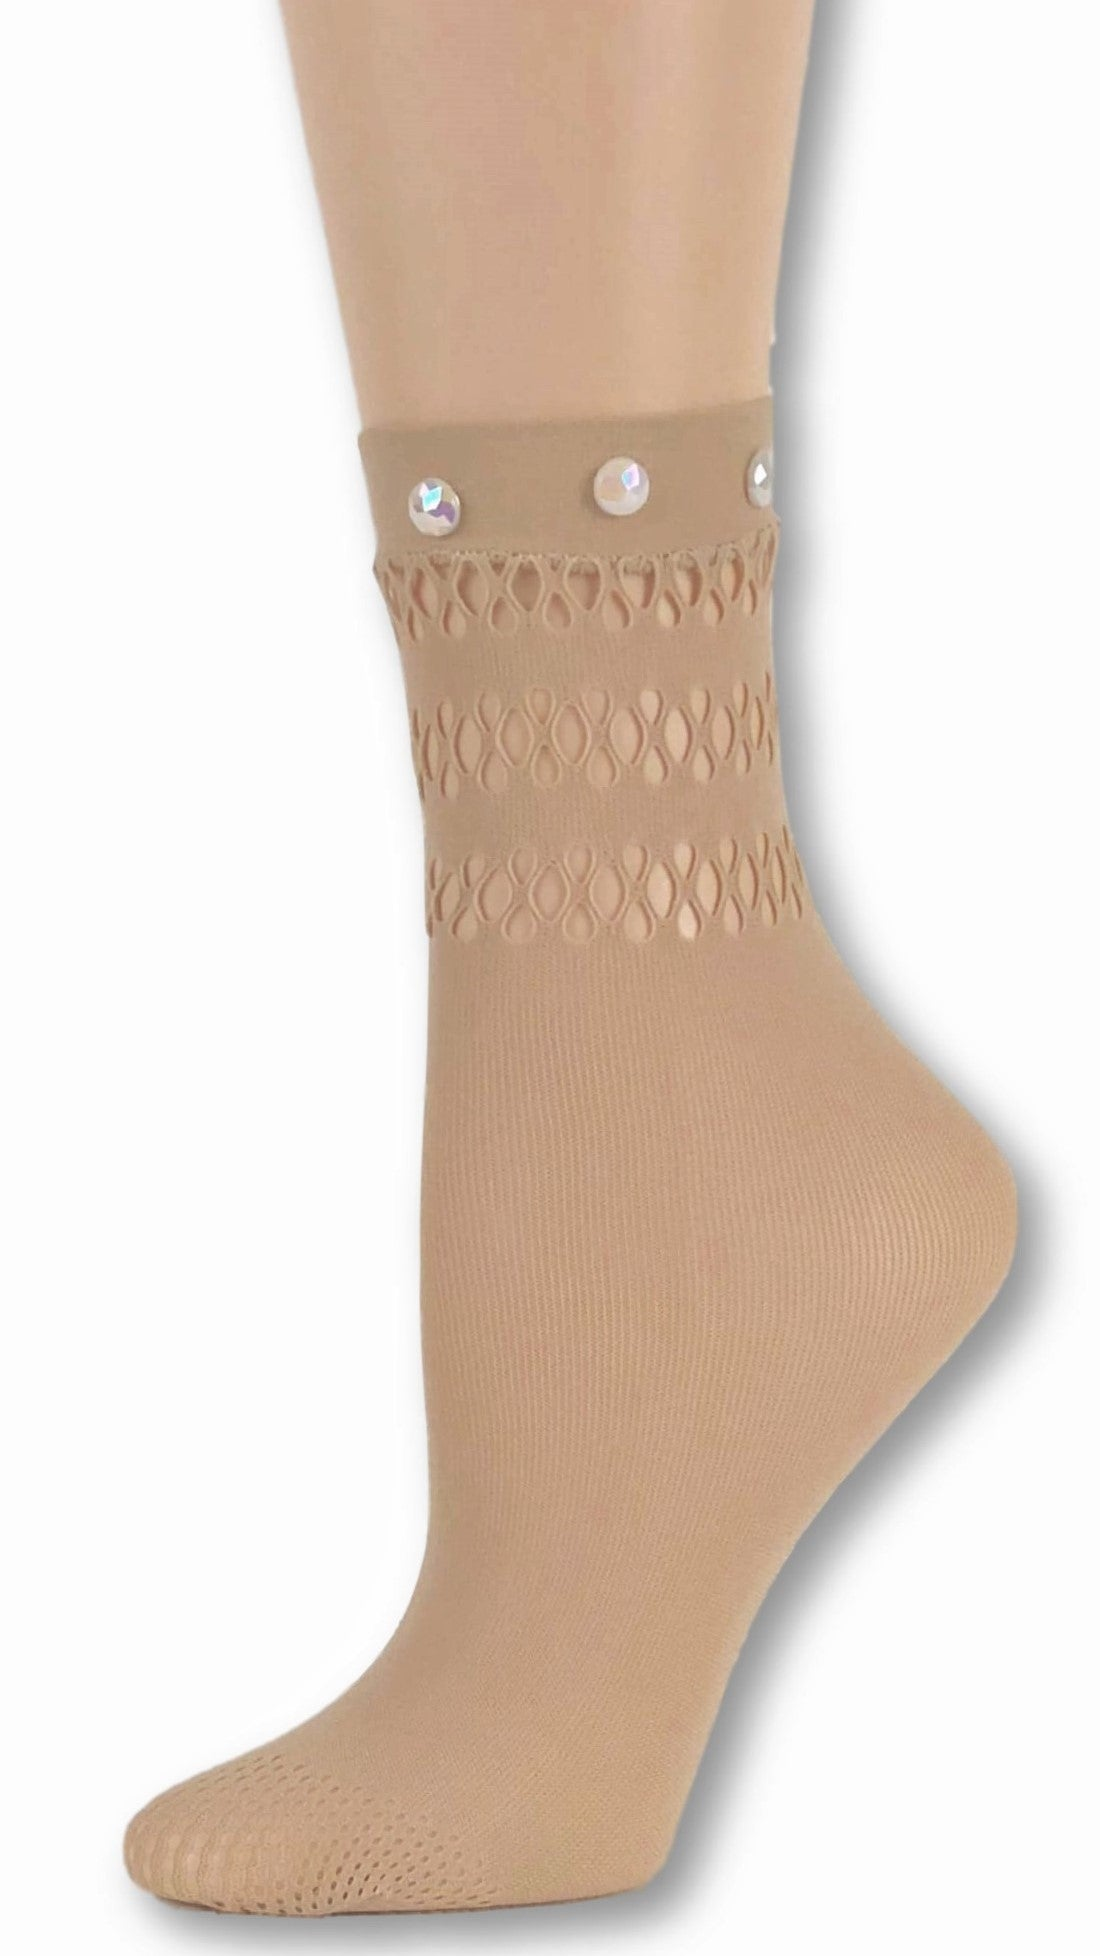 Trendy Beige Custom Mesh Socks with beads - Global Trendz Fashion®